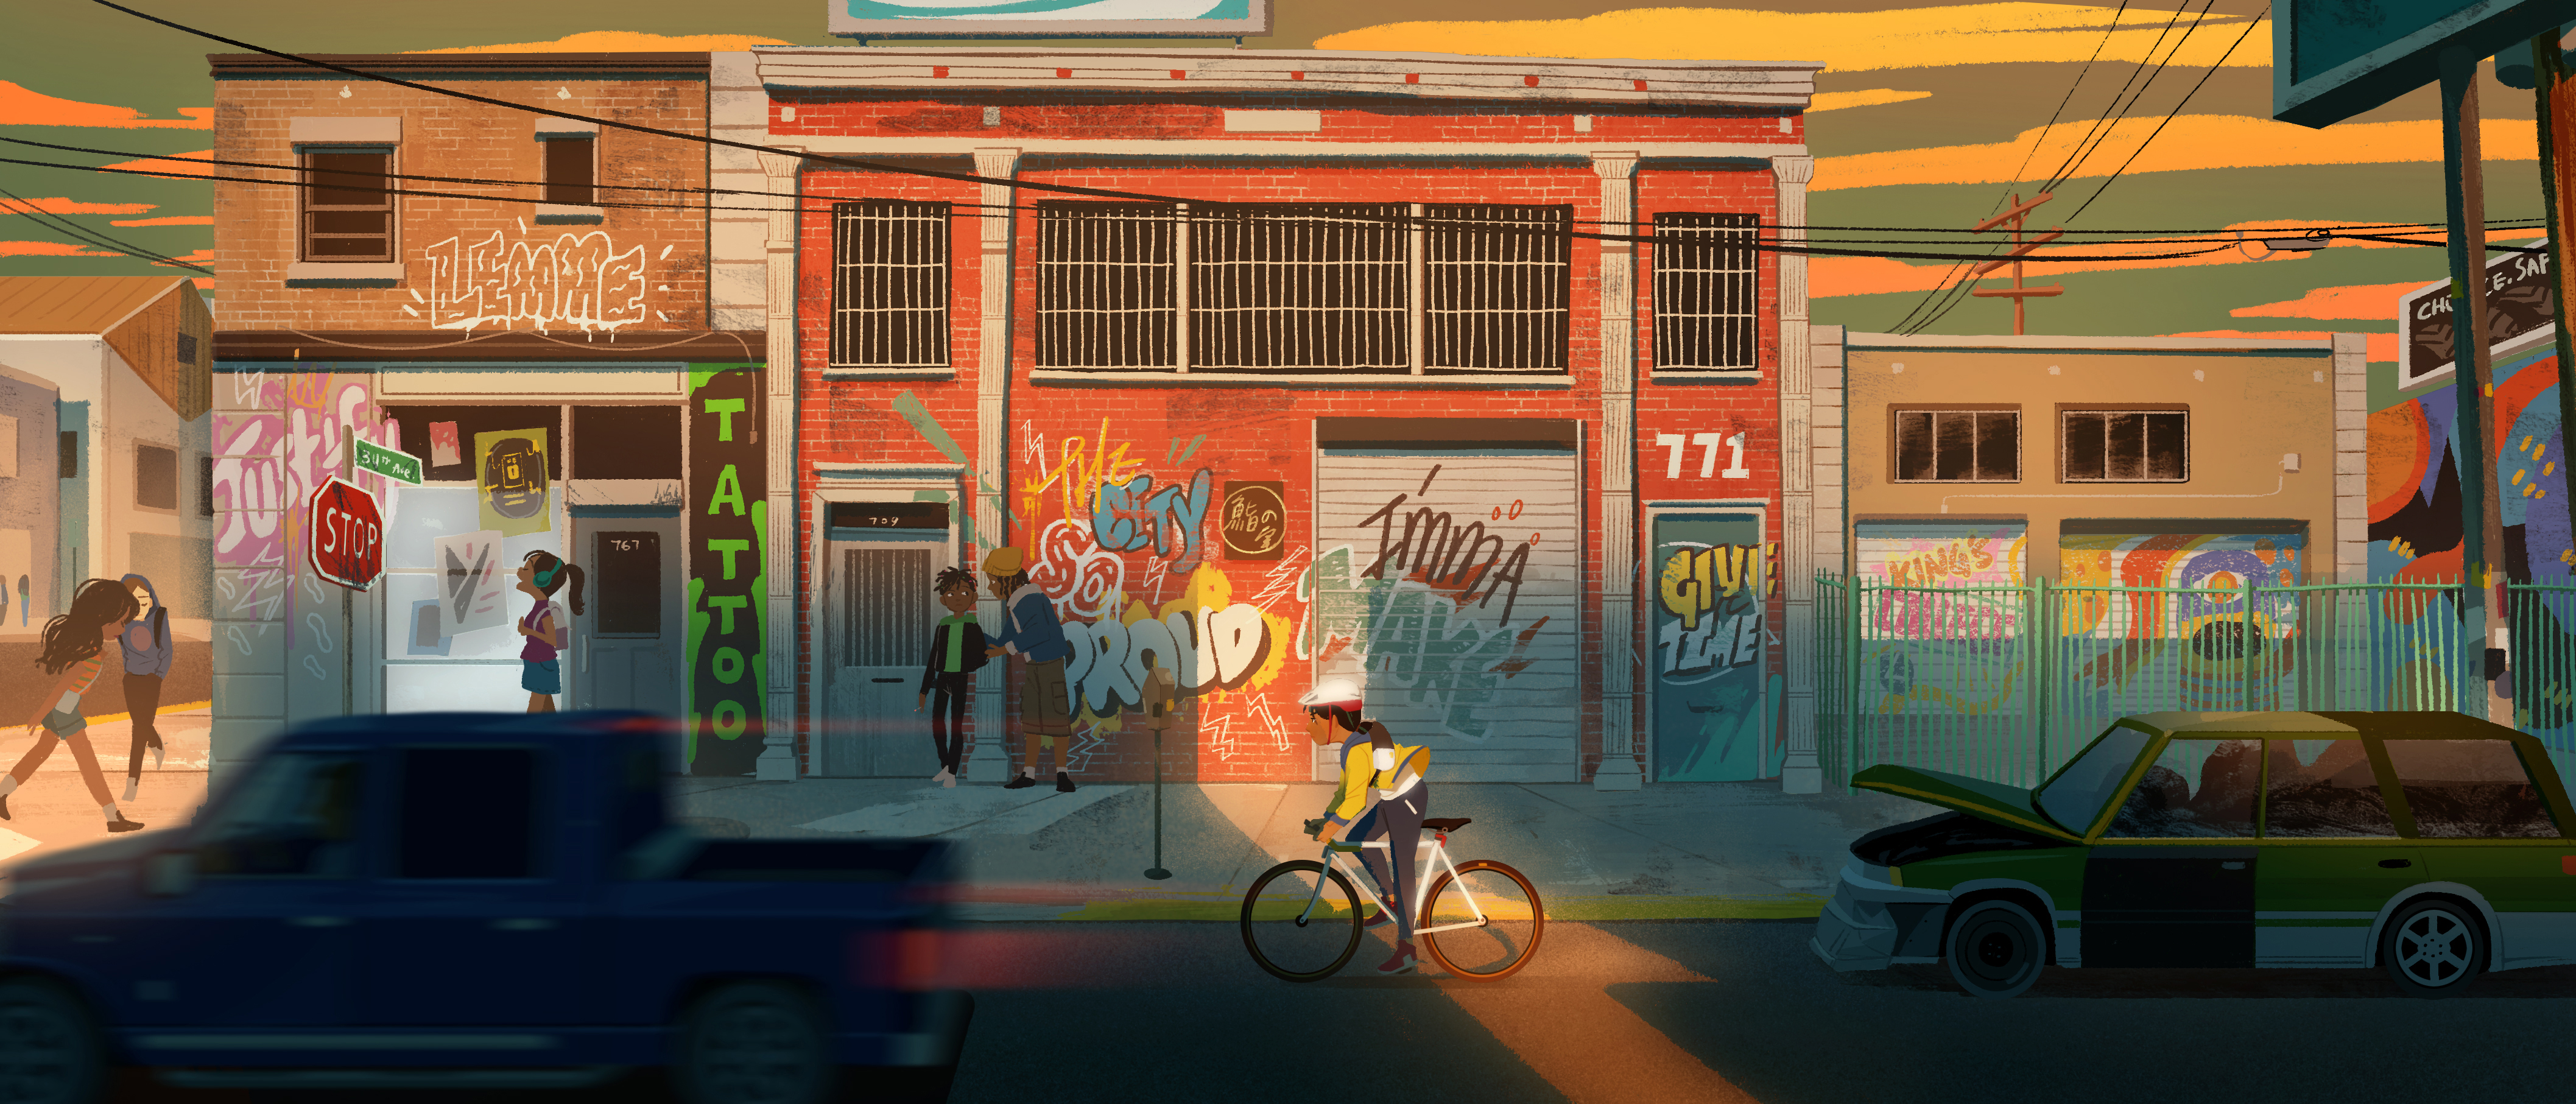 Concept_Painting_Street_version2